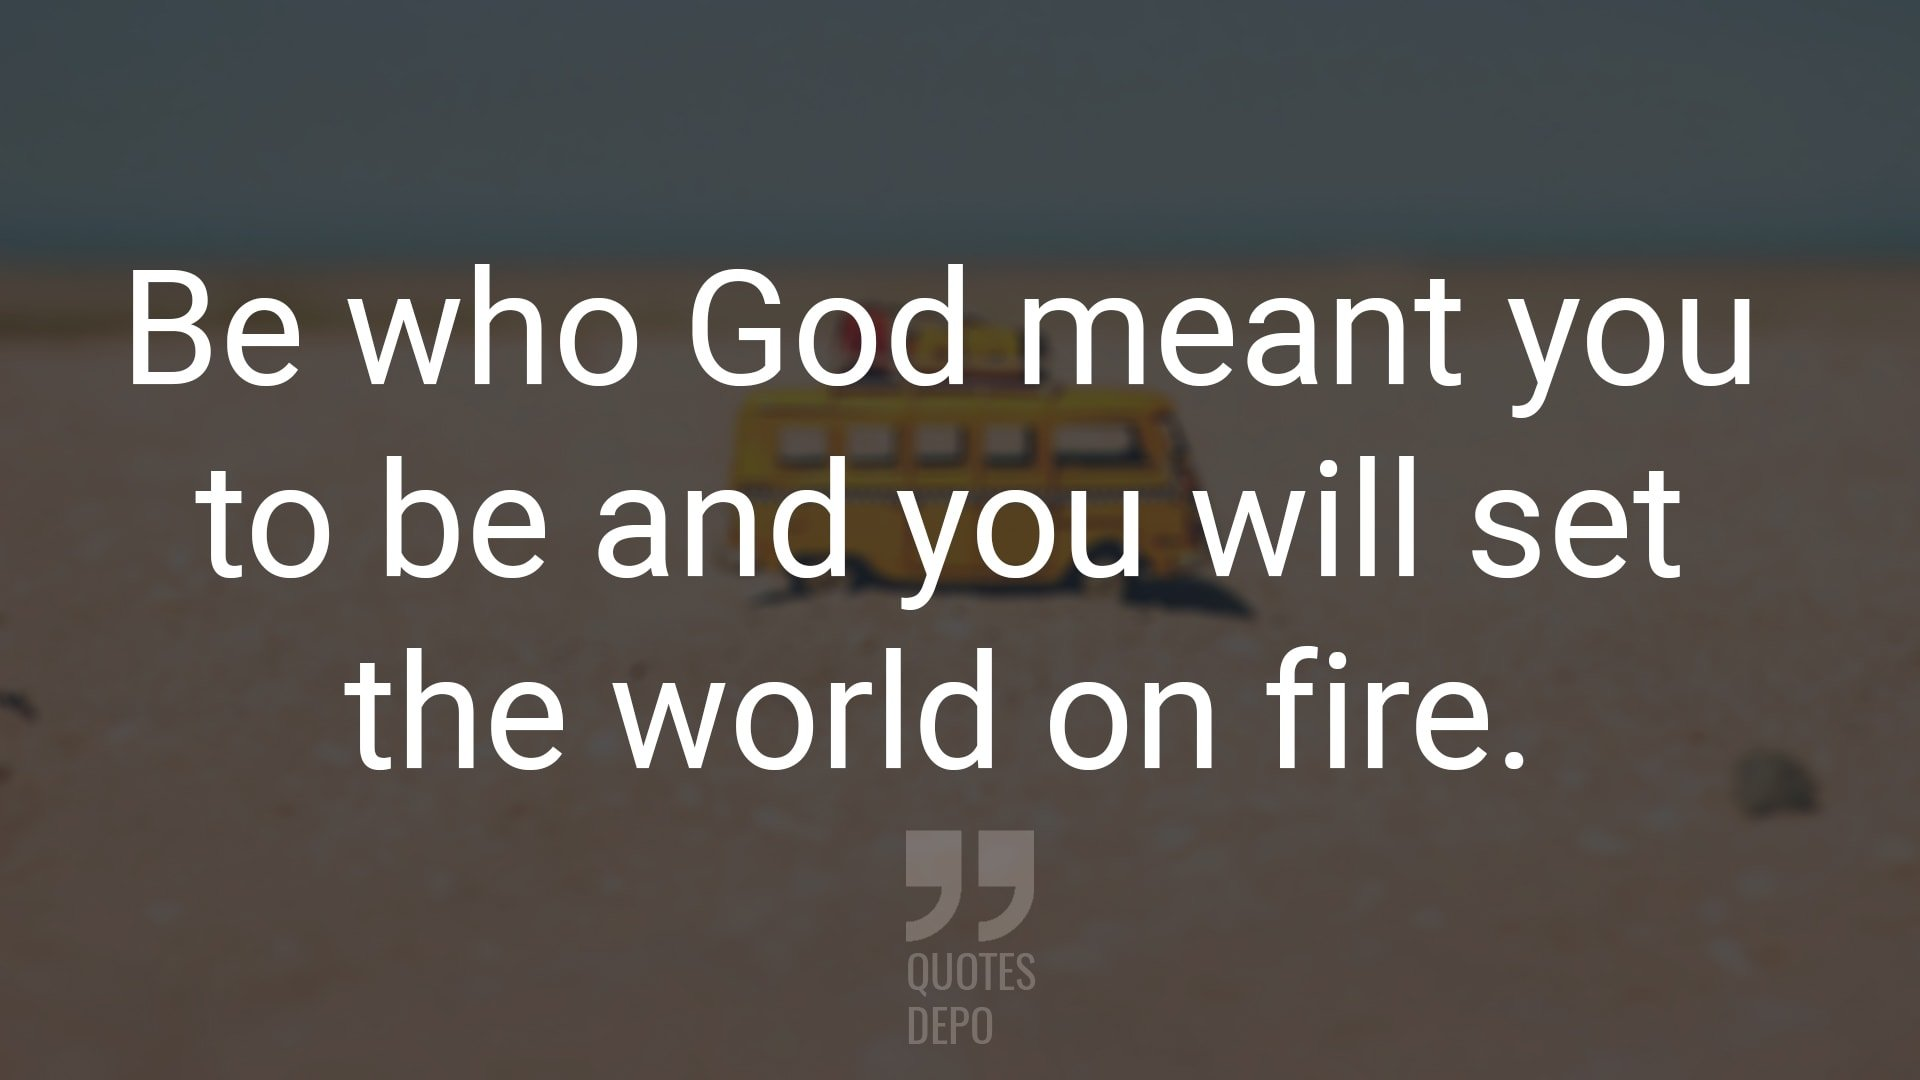 be who god meant you to be